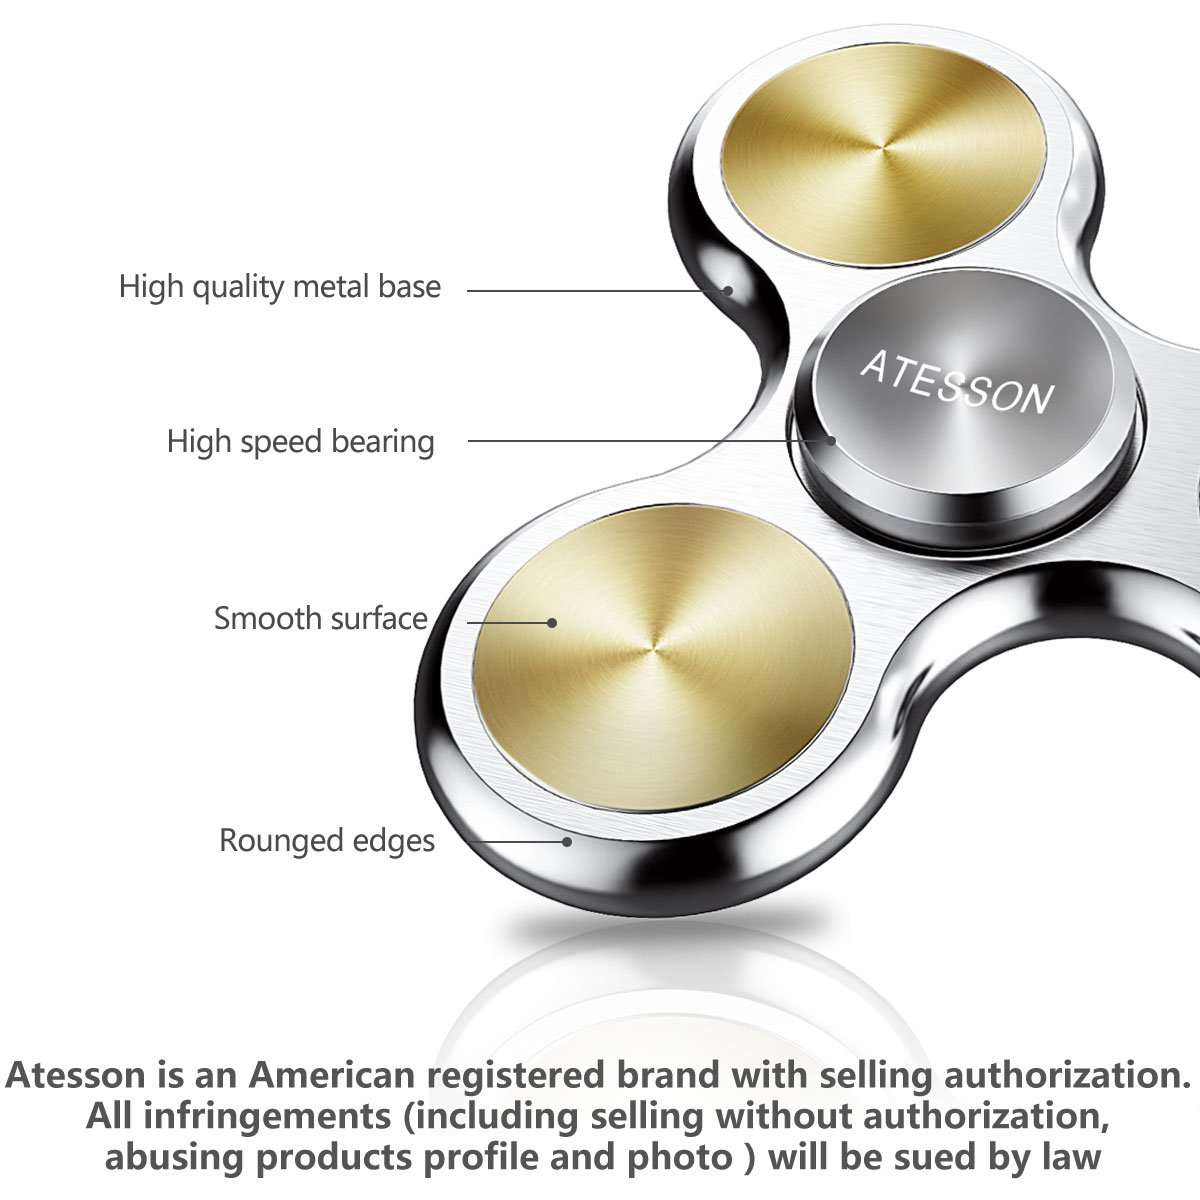 ATESSON Fidget Spinner Toy 4-10 Min Spins Ultra Durable Stainless Steel Bearing High Speed Precision Metal Material Hand Spinner Focus Anxiety Stress Relief Boredom Killing Time Toys - Silver by ATESSON (Image #2)